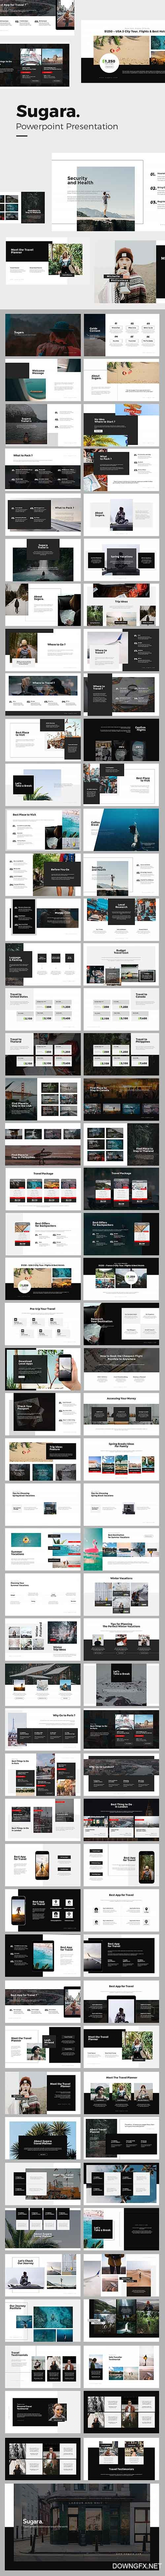 Sugara Travel Guides Powerpoint Template 21937115